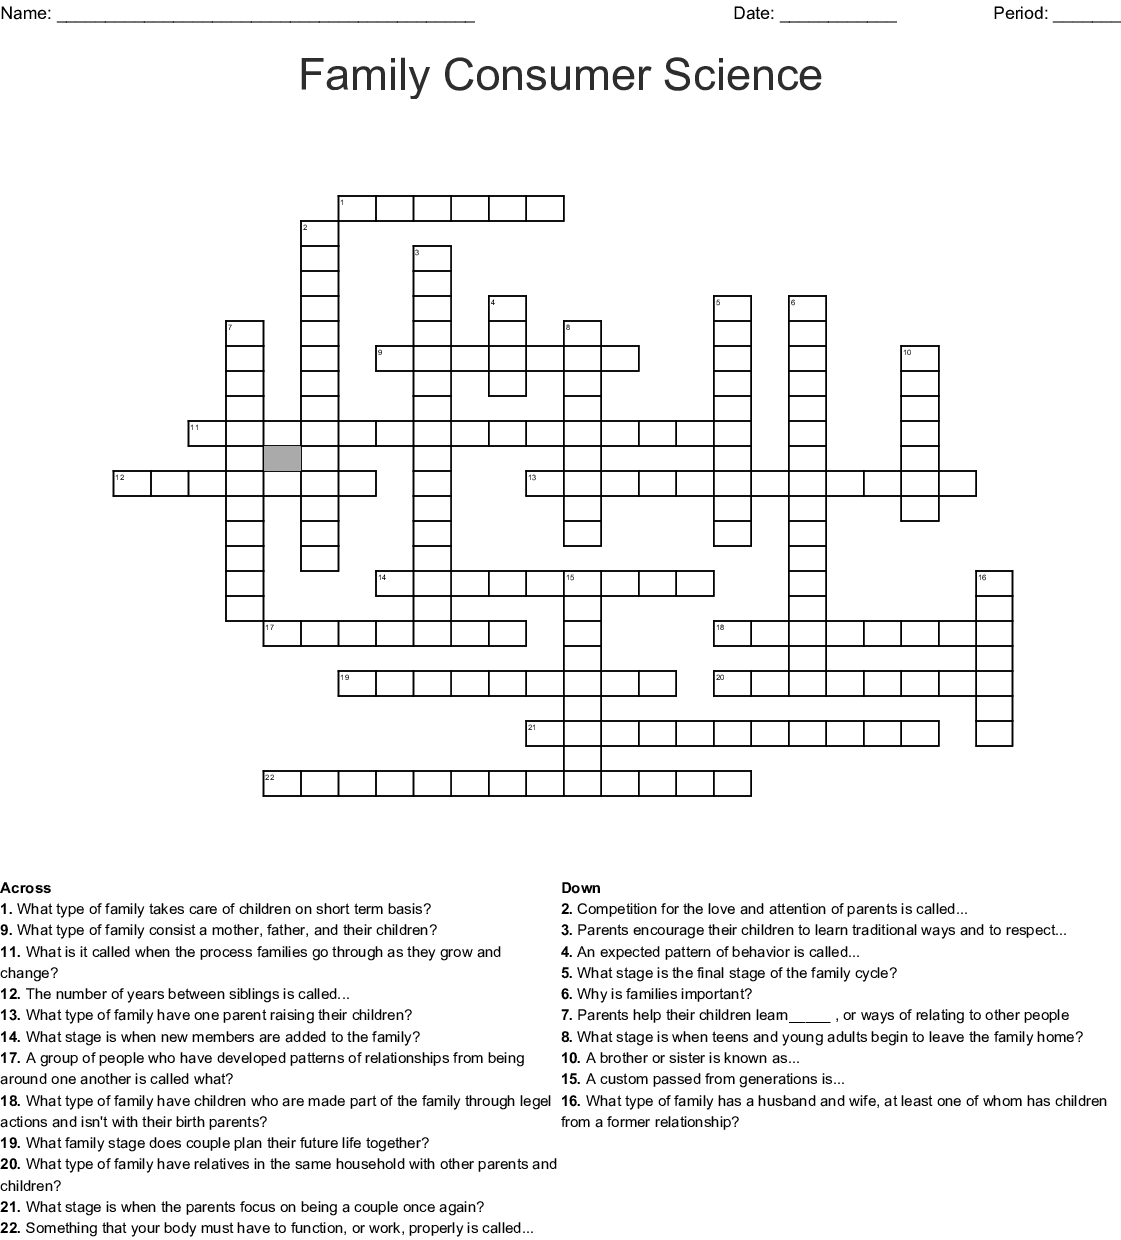 Family Consumer Science Worksheet